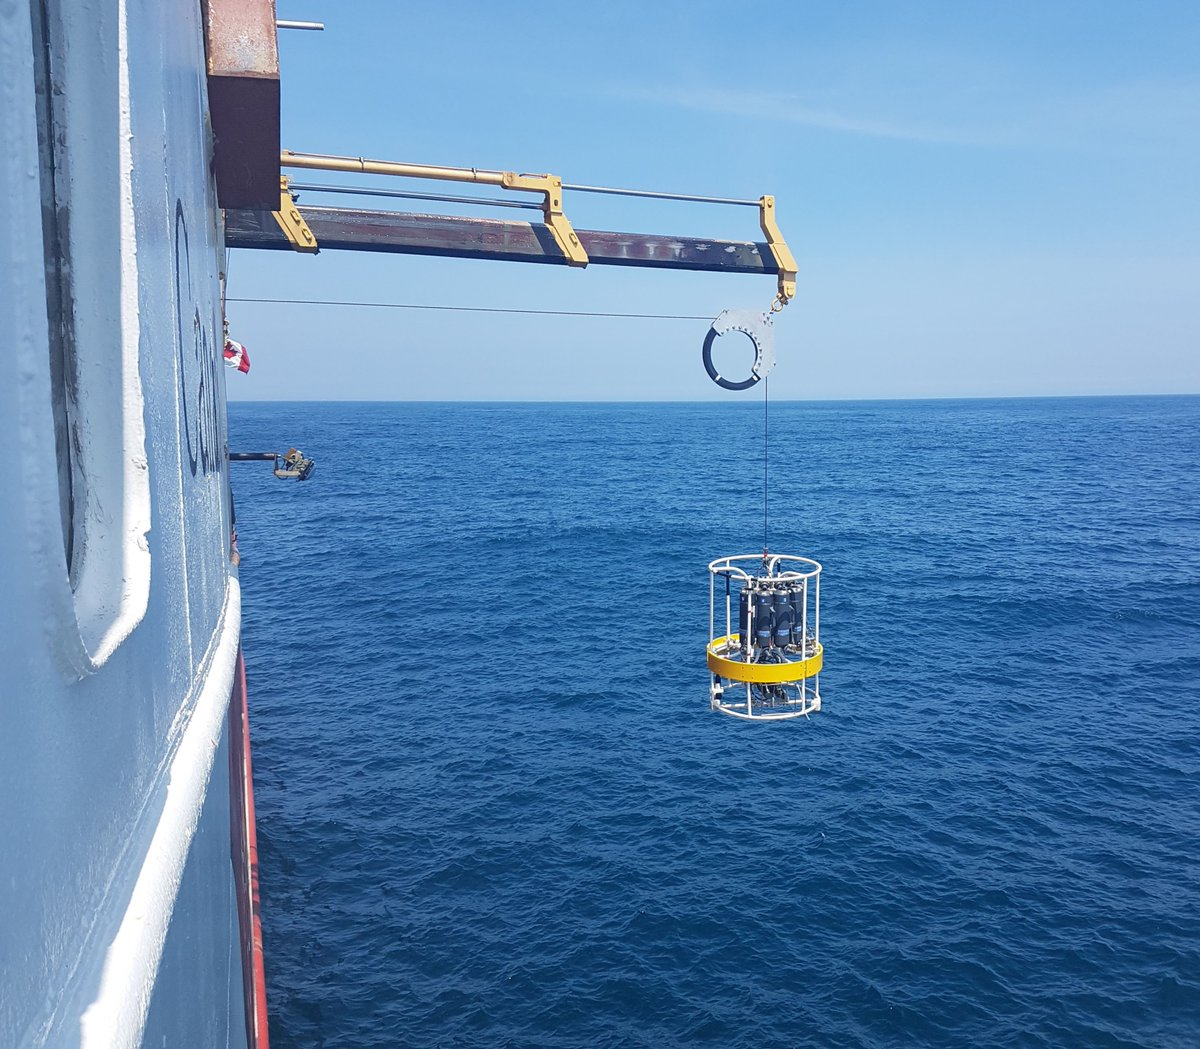 Our ecosystem summer survey of the Scotian Shelf and Bay of Fundy is complete! Abiding by COVID-19 guidelines, we hauled 202 tows, 281 species and gathered important information.